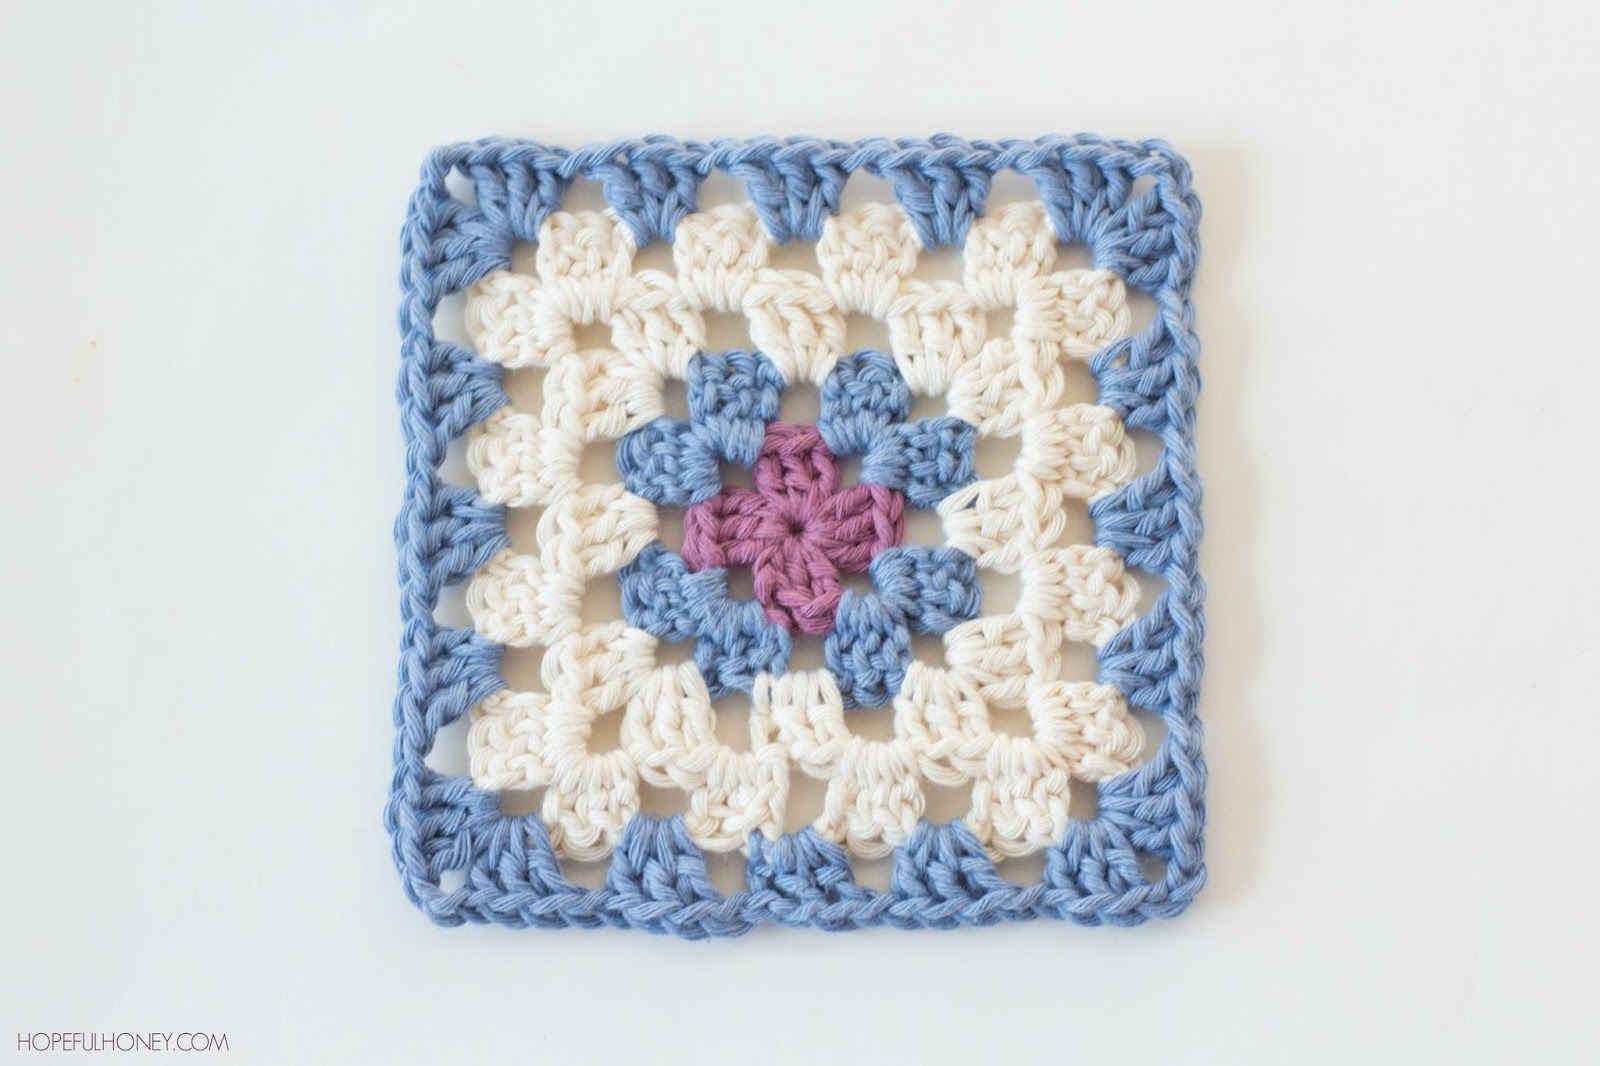 Hope you all enjoyed this fun and easy granny square pattern!